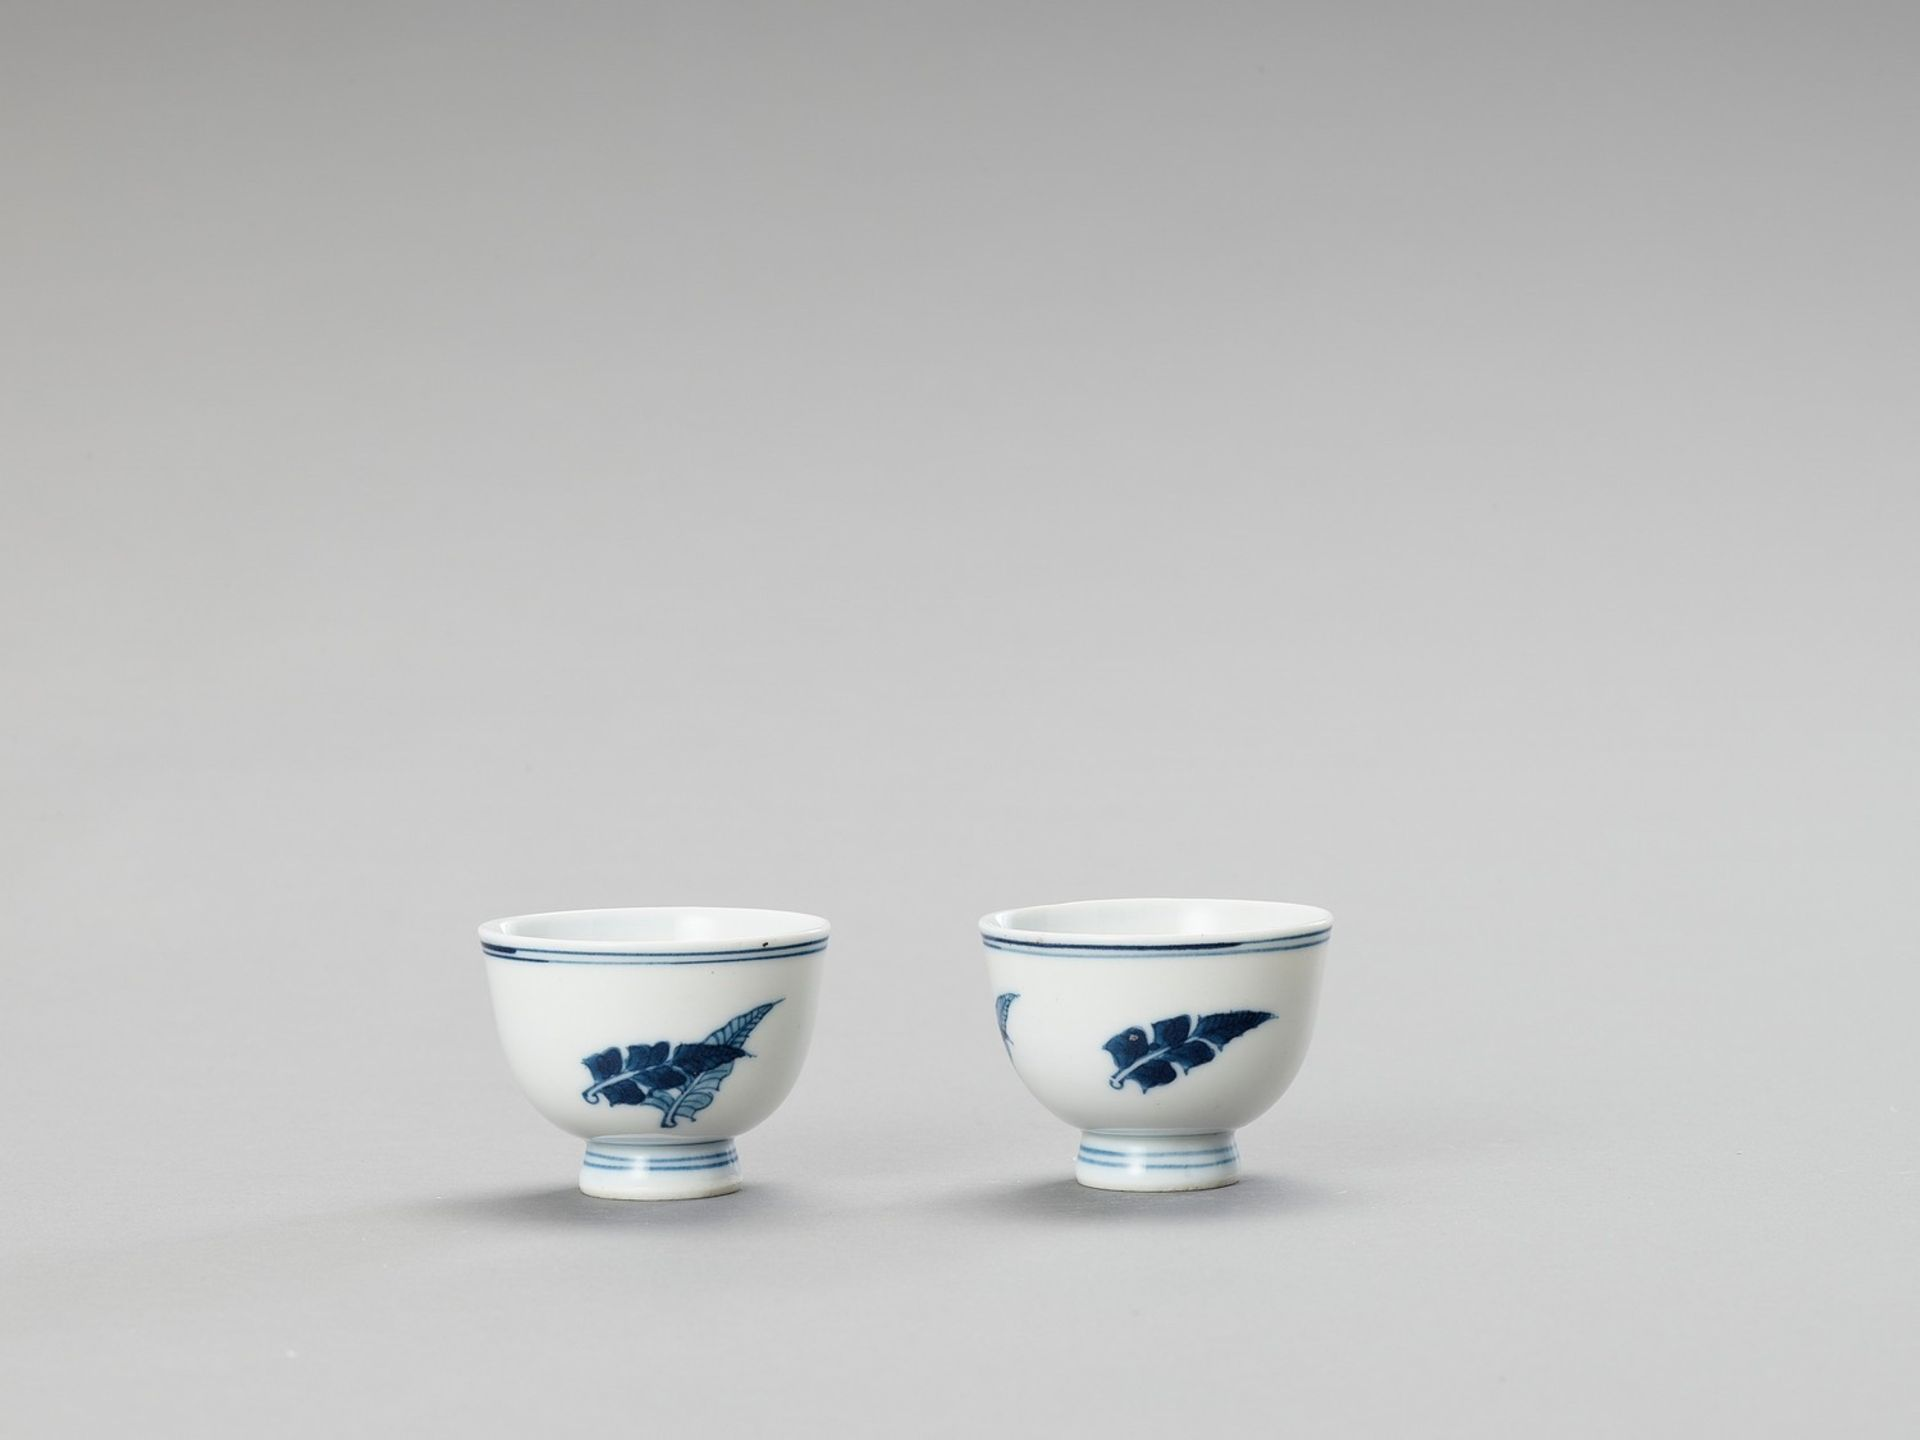 A SMALL PAIR OF BLUE AND WHITE PORCELAIN CUPS - Image 3 of 5